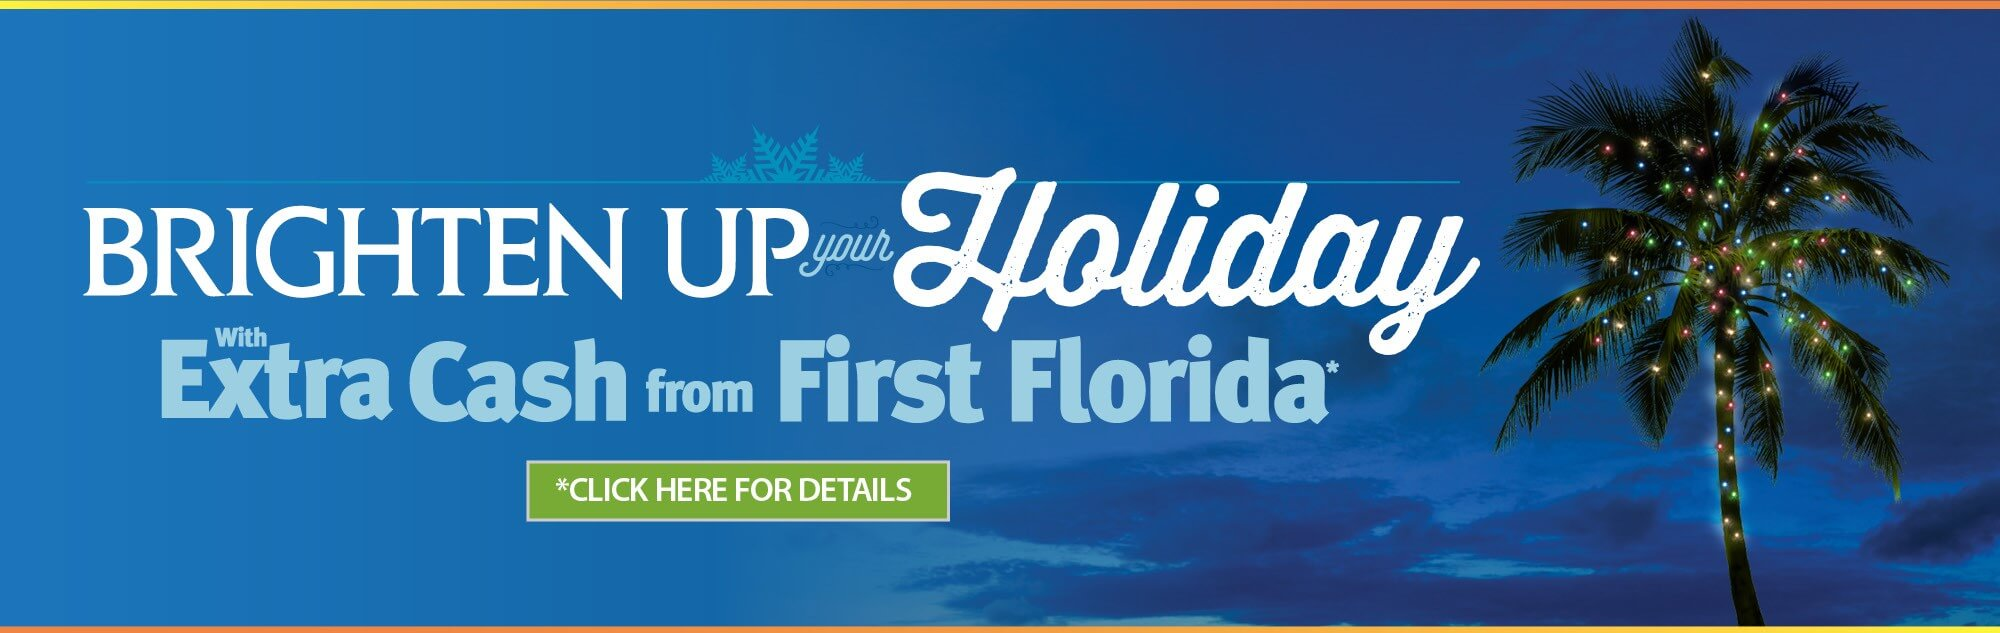 Brighten up your holiday with extra cash from First Florida. Click here for details.